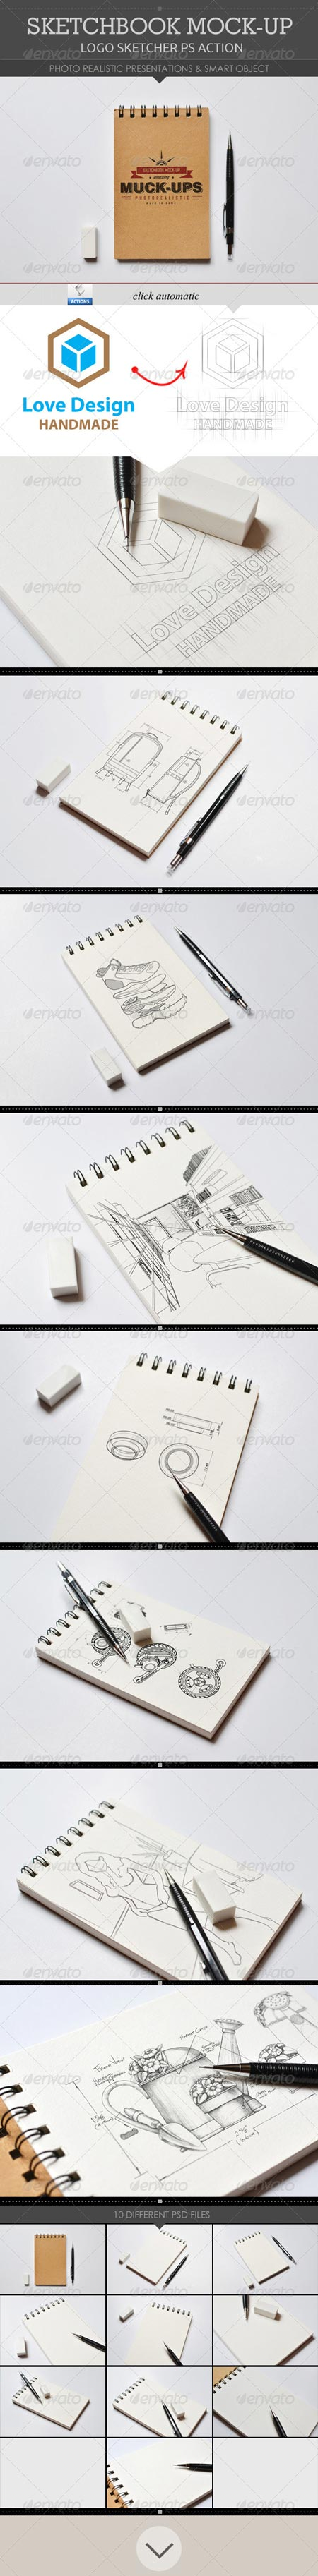 GraphicRiver Sketchbook Mock-Up 8613061